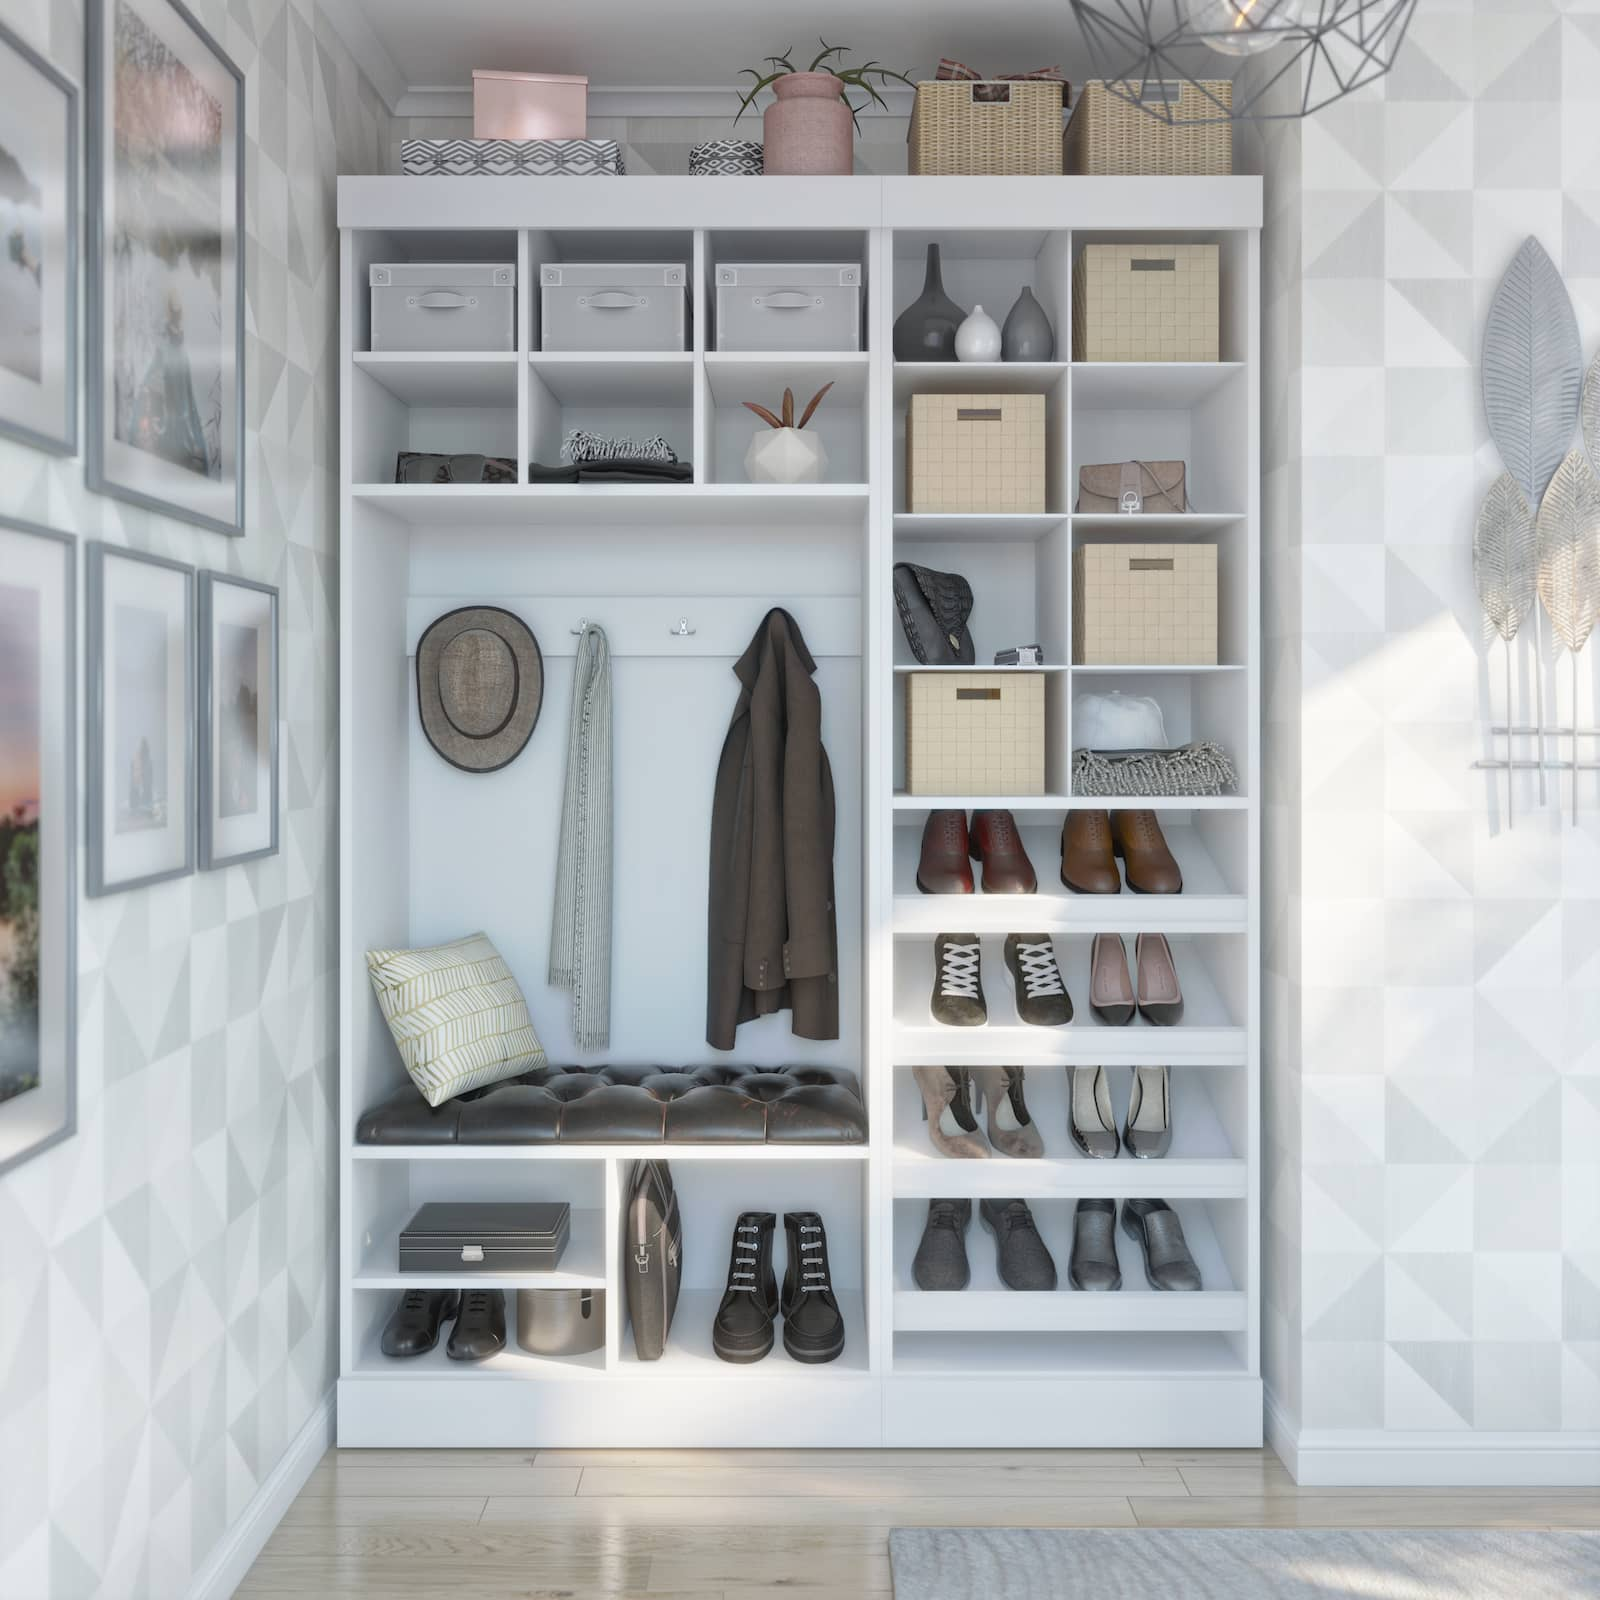 mudroom storage with coats, hooks, and and shoes